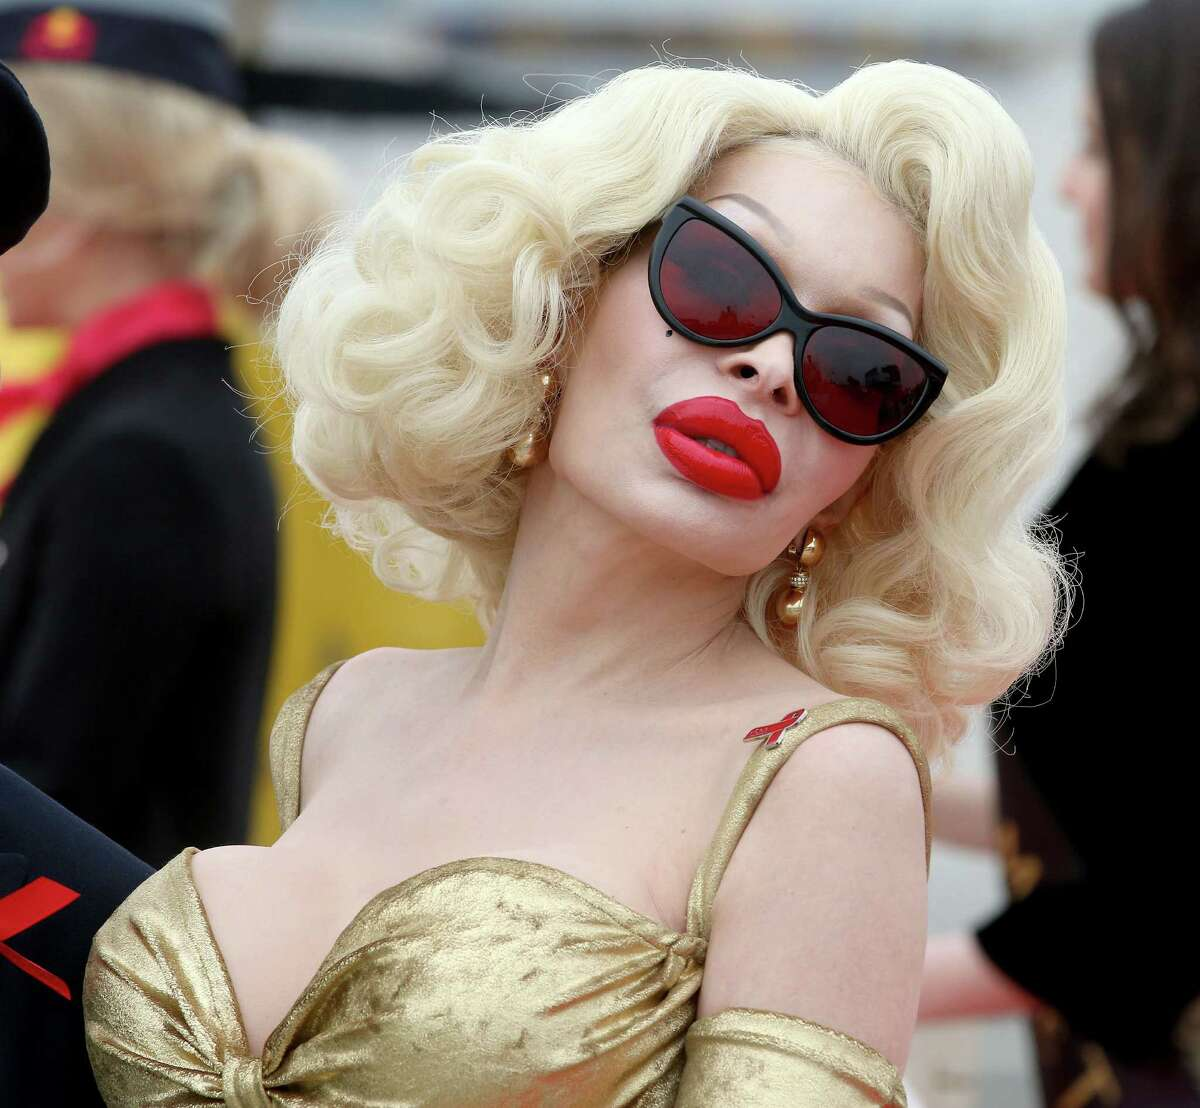 US transgender star Amanda Lepore arrives for the largest annual AIDS charity gala in Europe known as the Life Ball, at the Vienna International Airport near Schwechat, Austria, Friday, May 15, 2015.